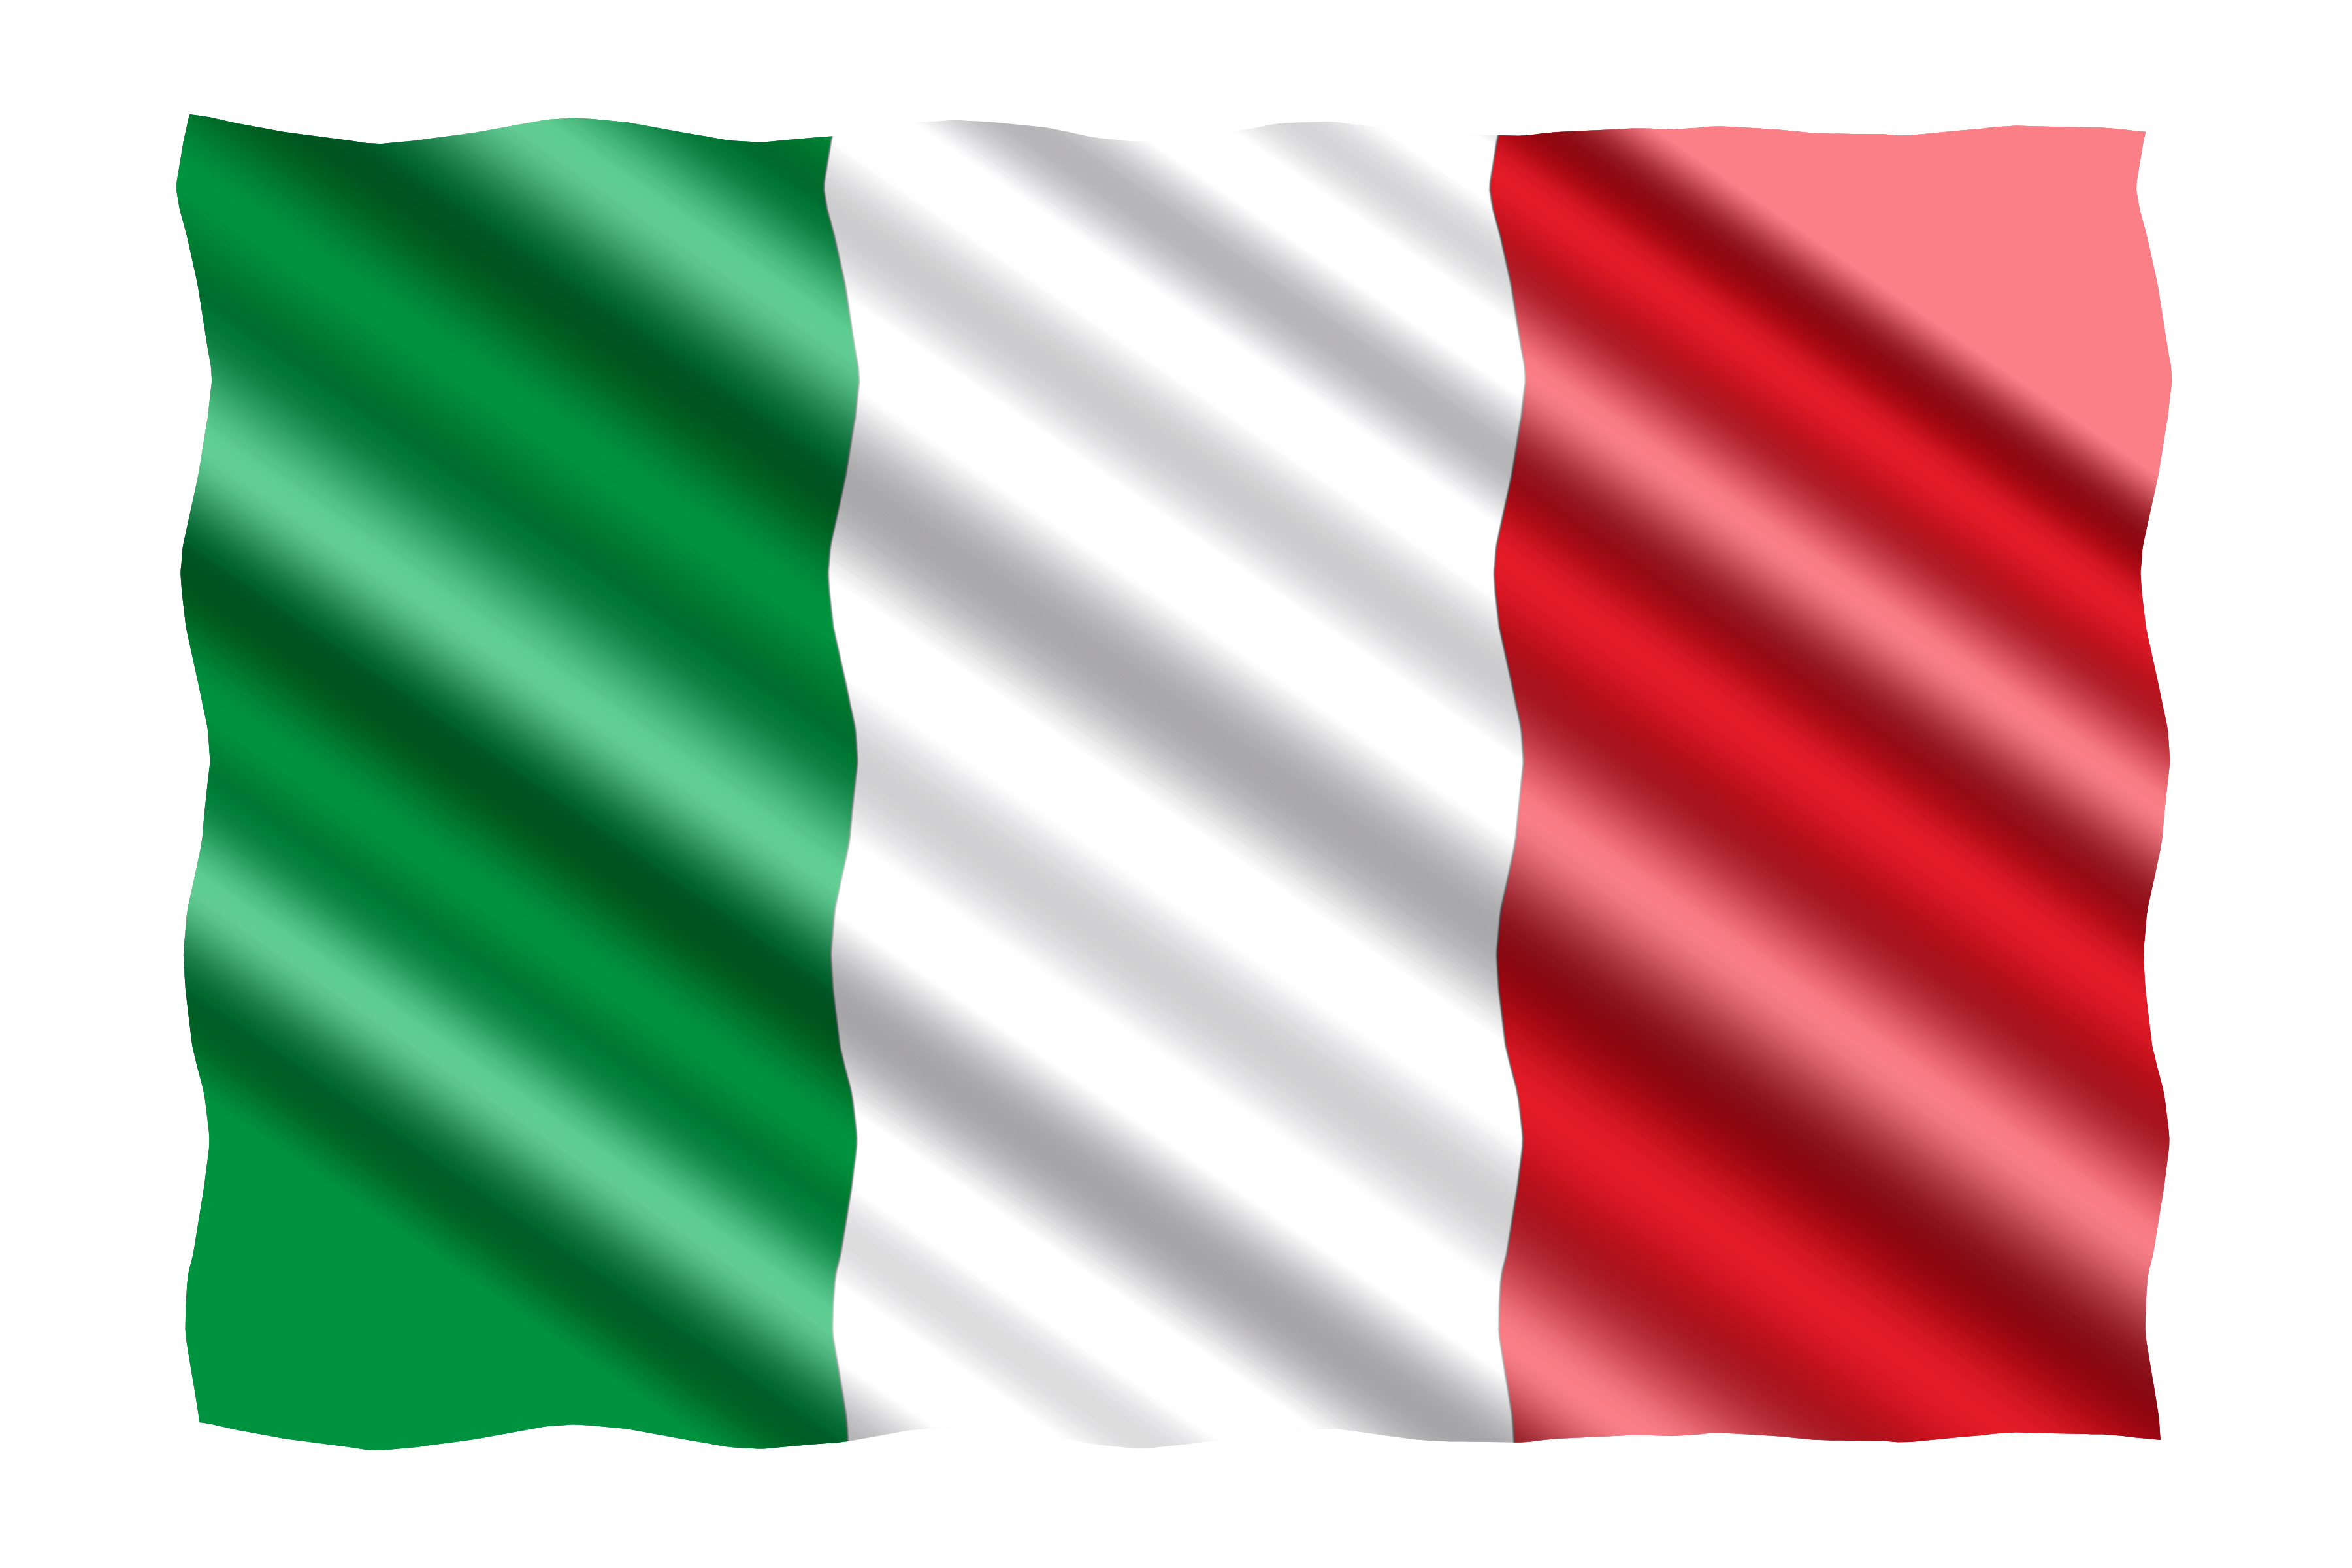 Italien Flagge.png